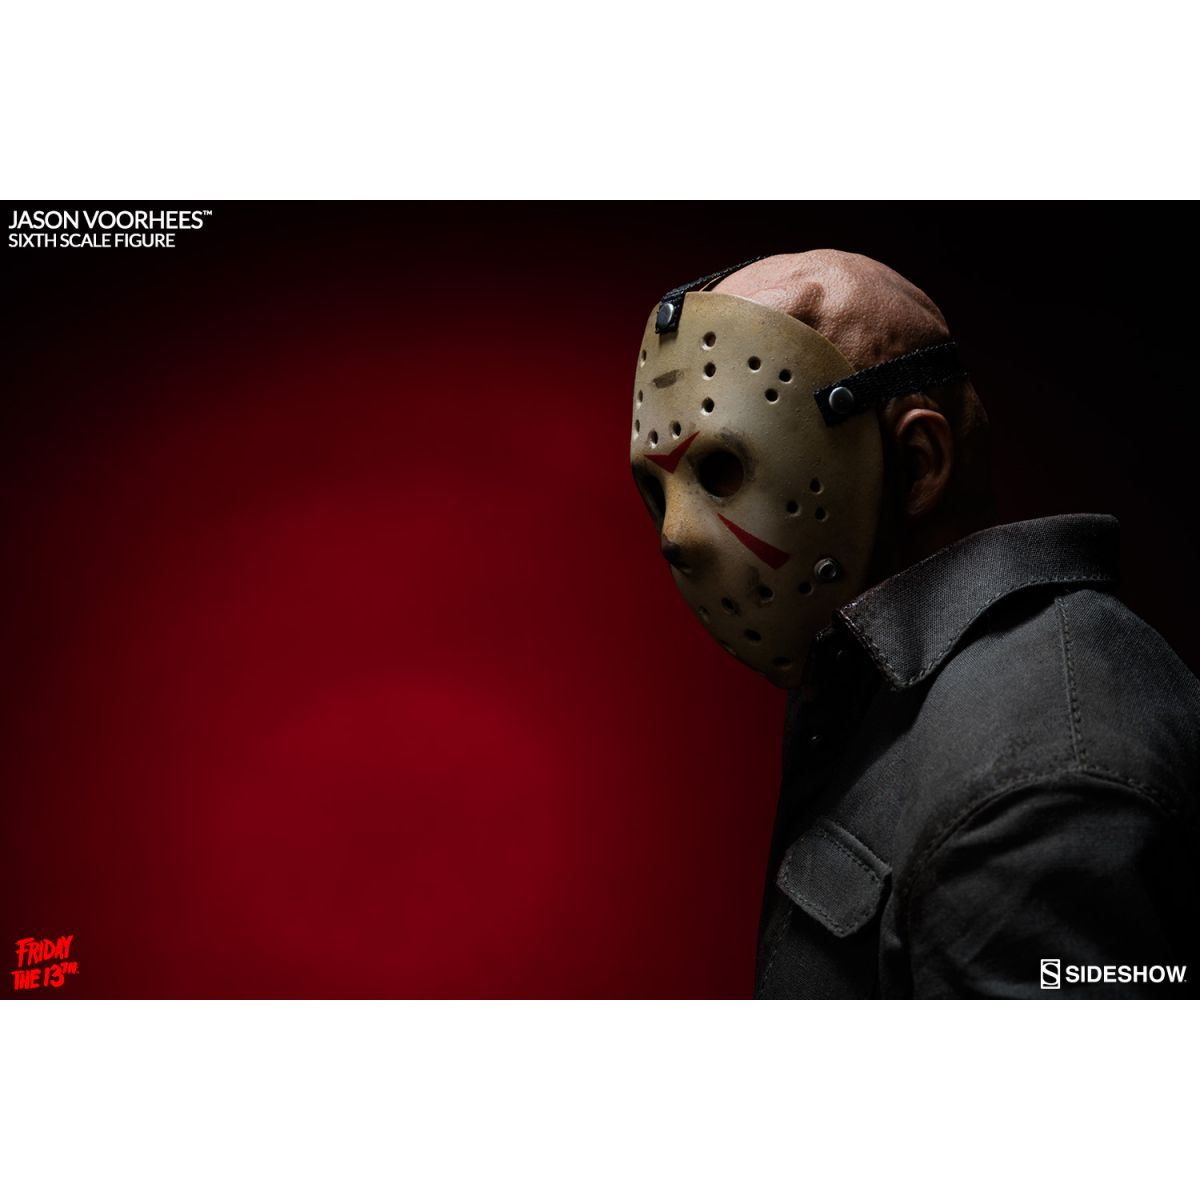 Sideshow Jason Voorhees 1/6 Sexta-feira 13 Parte III - Movie Freaks Collectibles